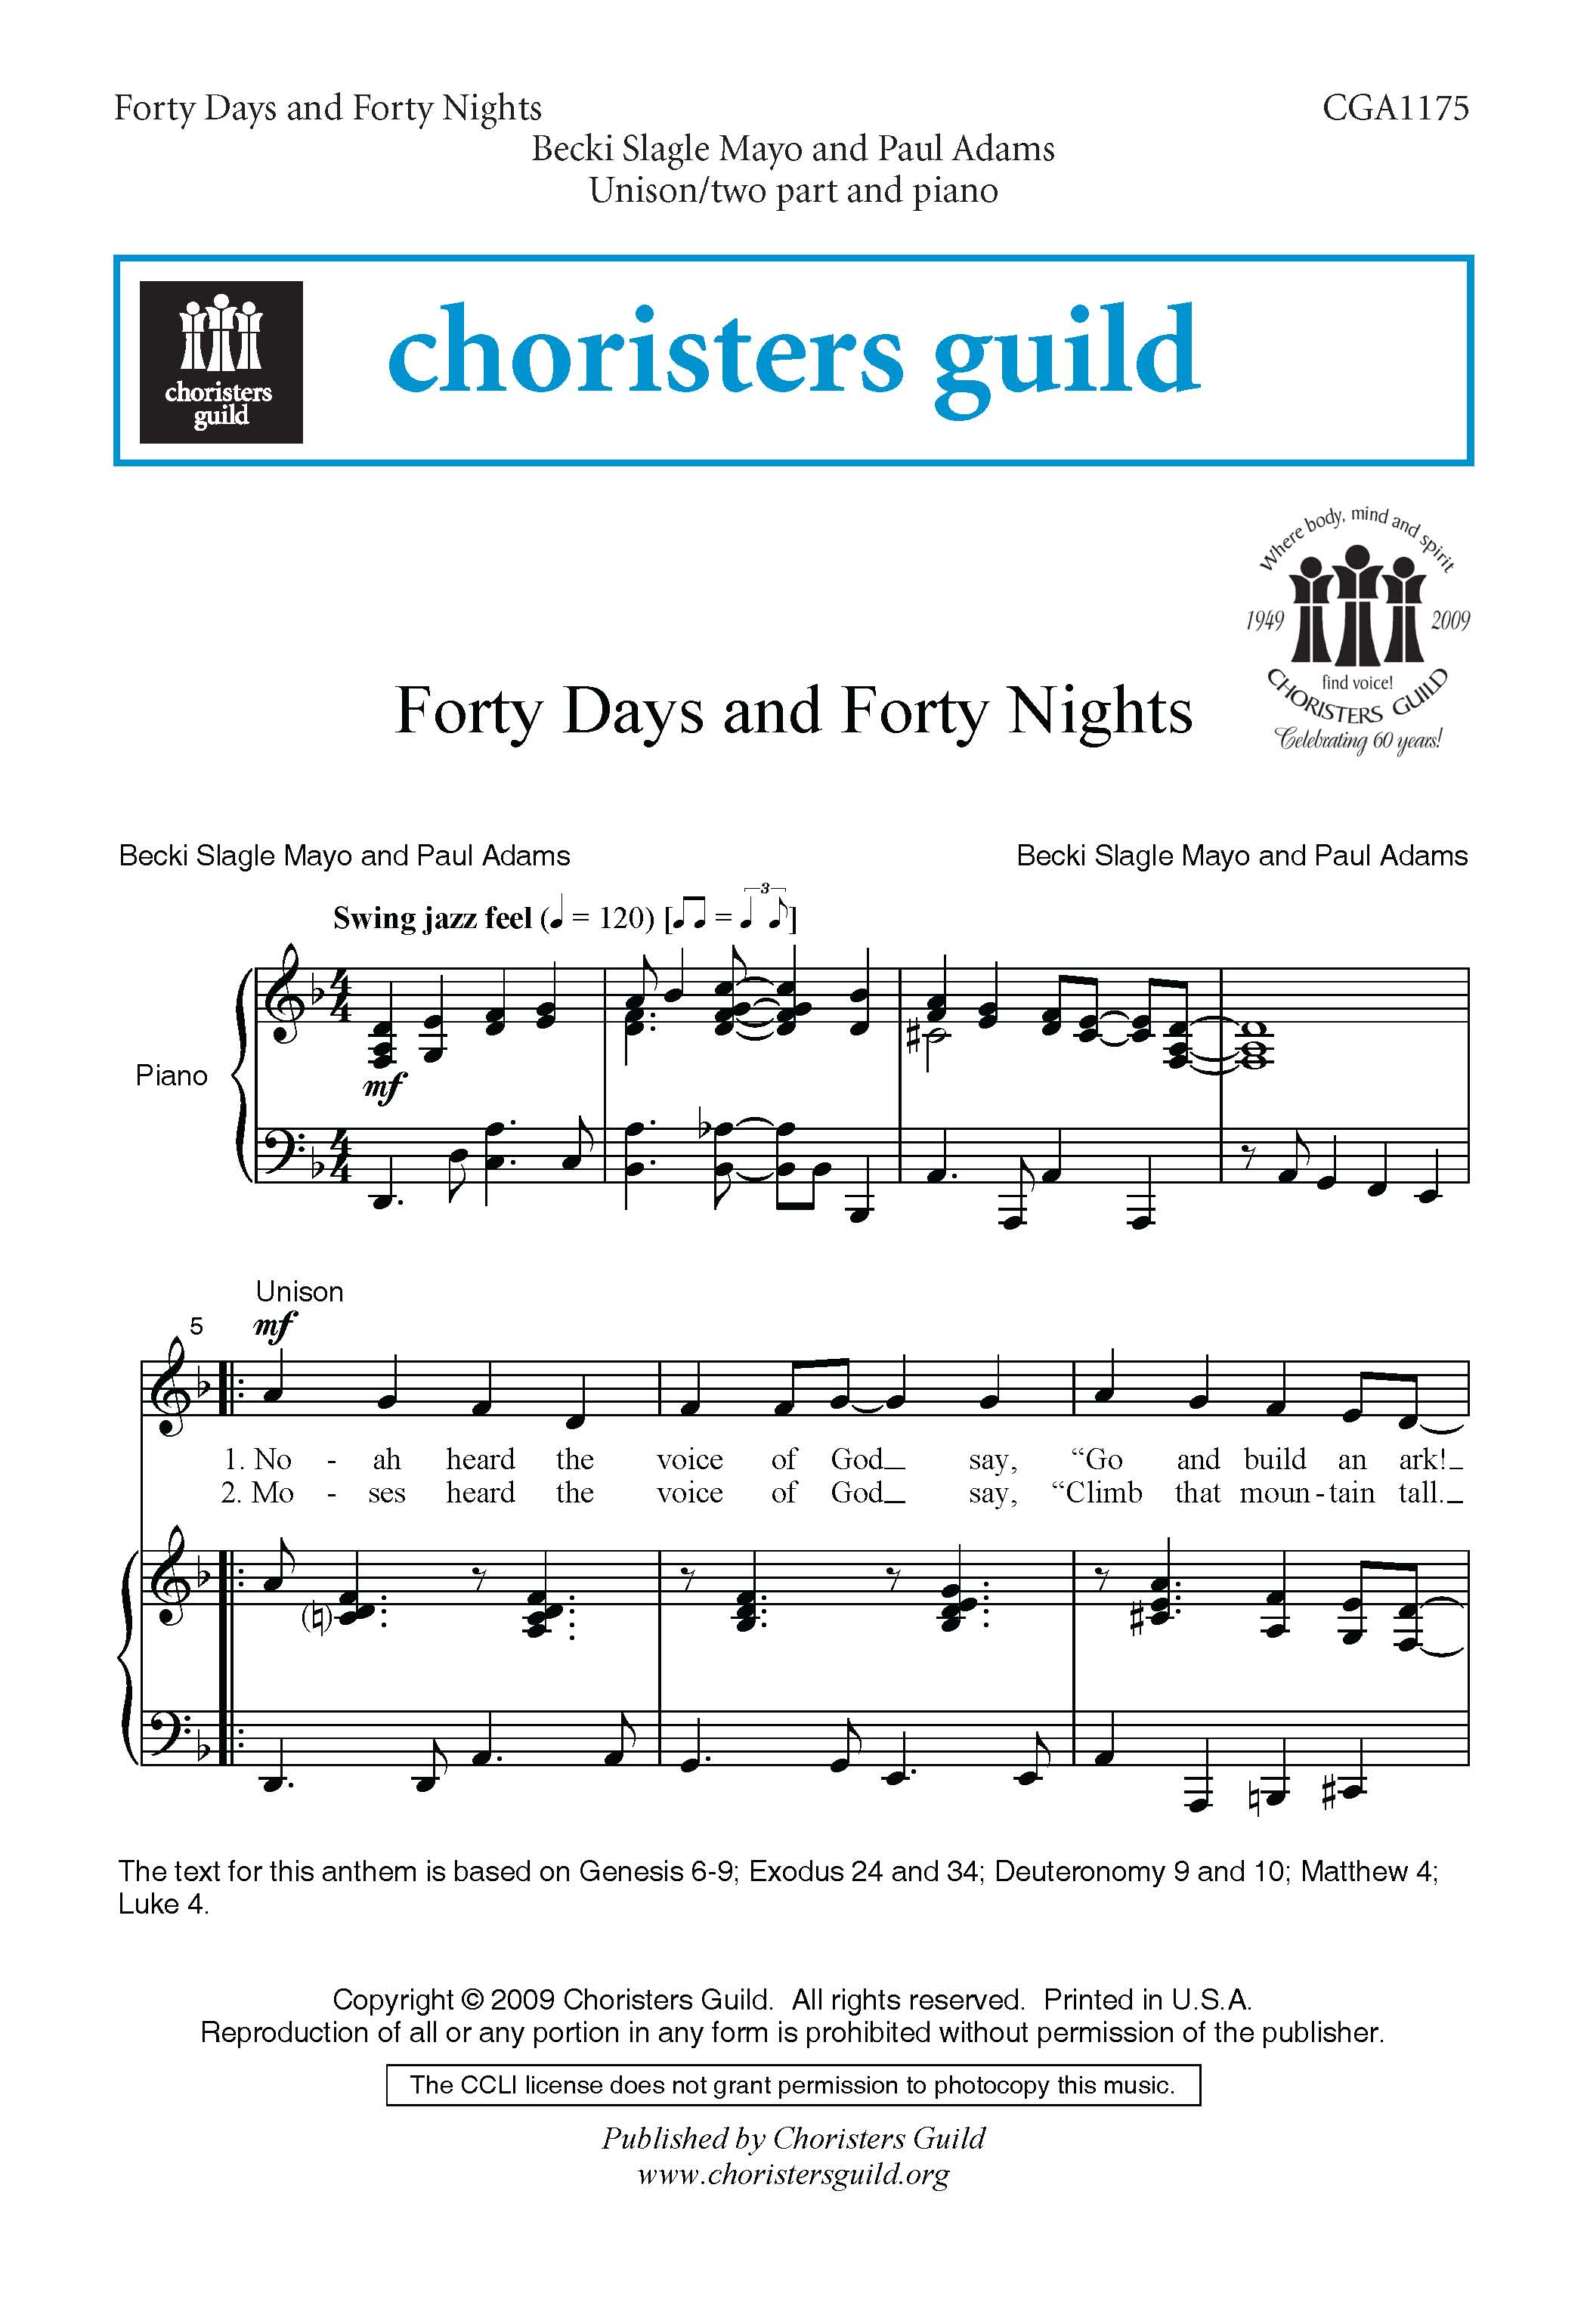 Forty Days and Forty Nights Accompaniment Track